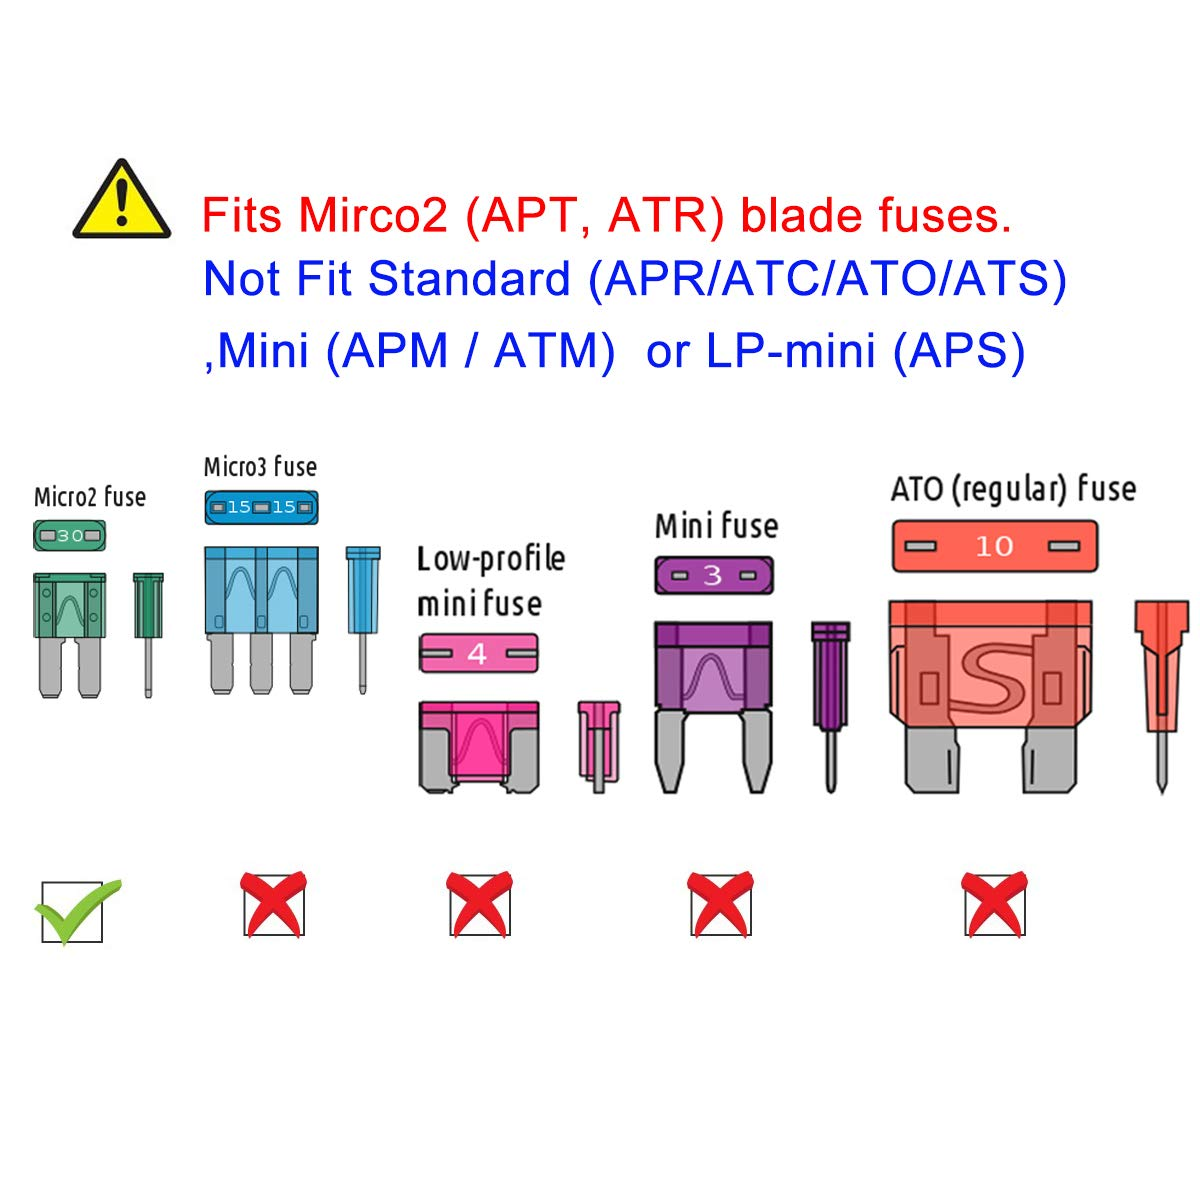 5 Pack Micro2 ATR Blade Fuse Holder Muhize Fuse Tap 12V Car Add-a-circuit Fuse TAP Adapter with 5 Amp Micro2 Blade Fuse